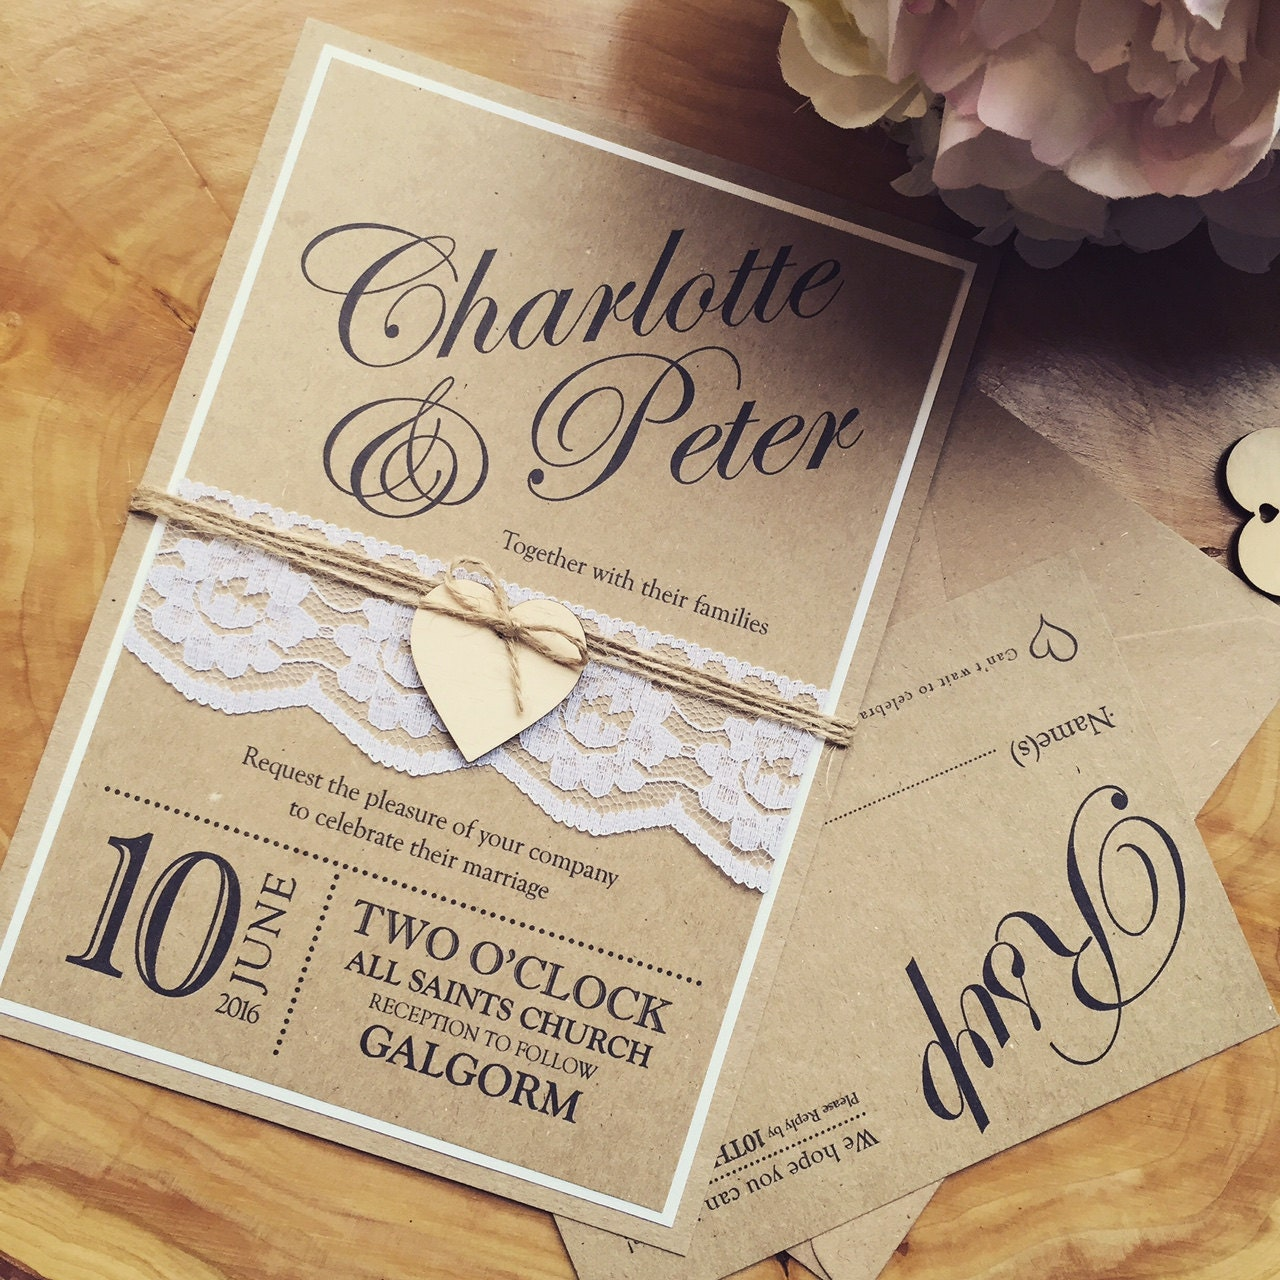 Handmade Wedding Invitation Rustic Wedding By. Wedding Packages Savannah Ga. Beach Wedding Invitations Diy. Wedding Planner Ebook. Wedding Invitations For Muslim Weddings. Grey Wedding Favor Boxes. Wedding Organizer In Davao City. Muriel's Wedding Dvd Amazon. Wedding Gowns Backless